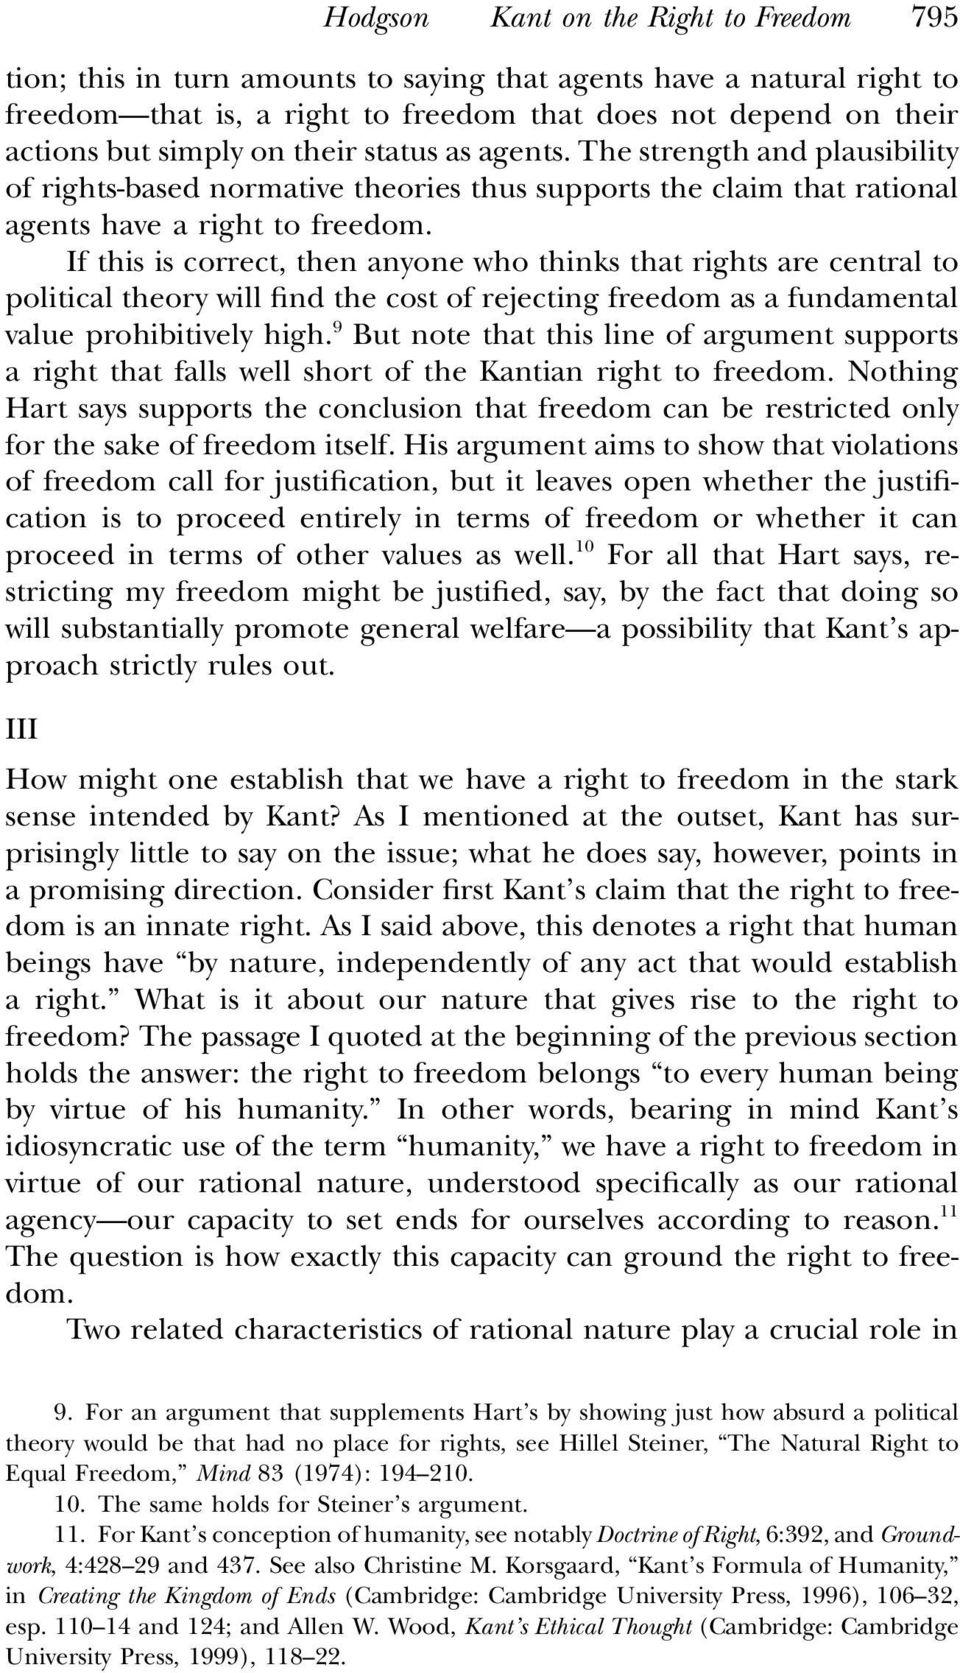 If this is correct, then anyone who thinks that rights are central to political theory will find the cost of rejecting freedom as a fundamental value prohibitively high.